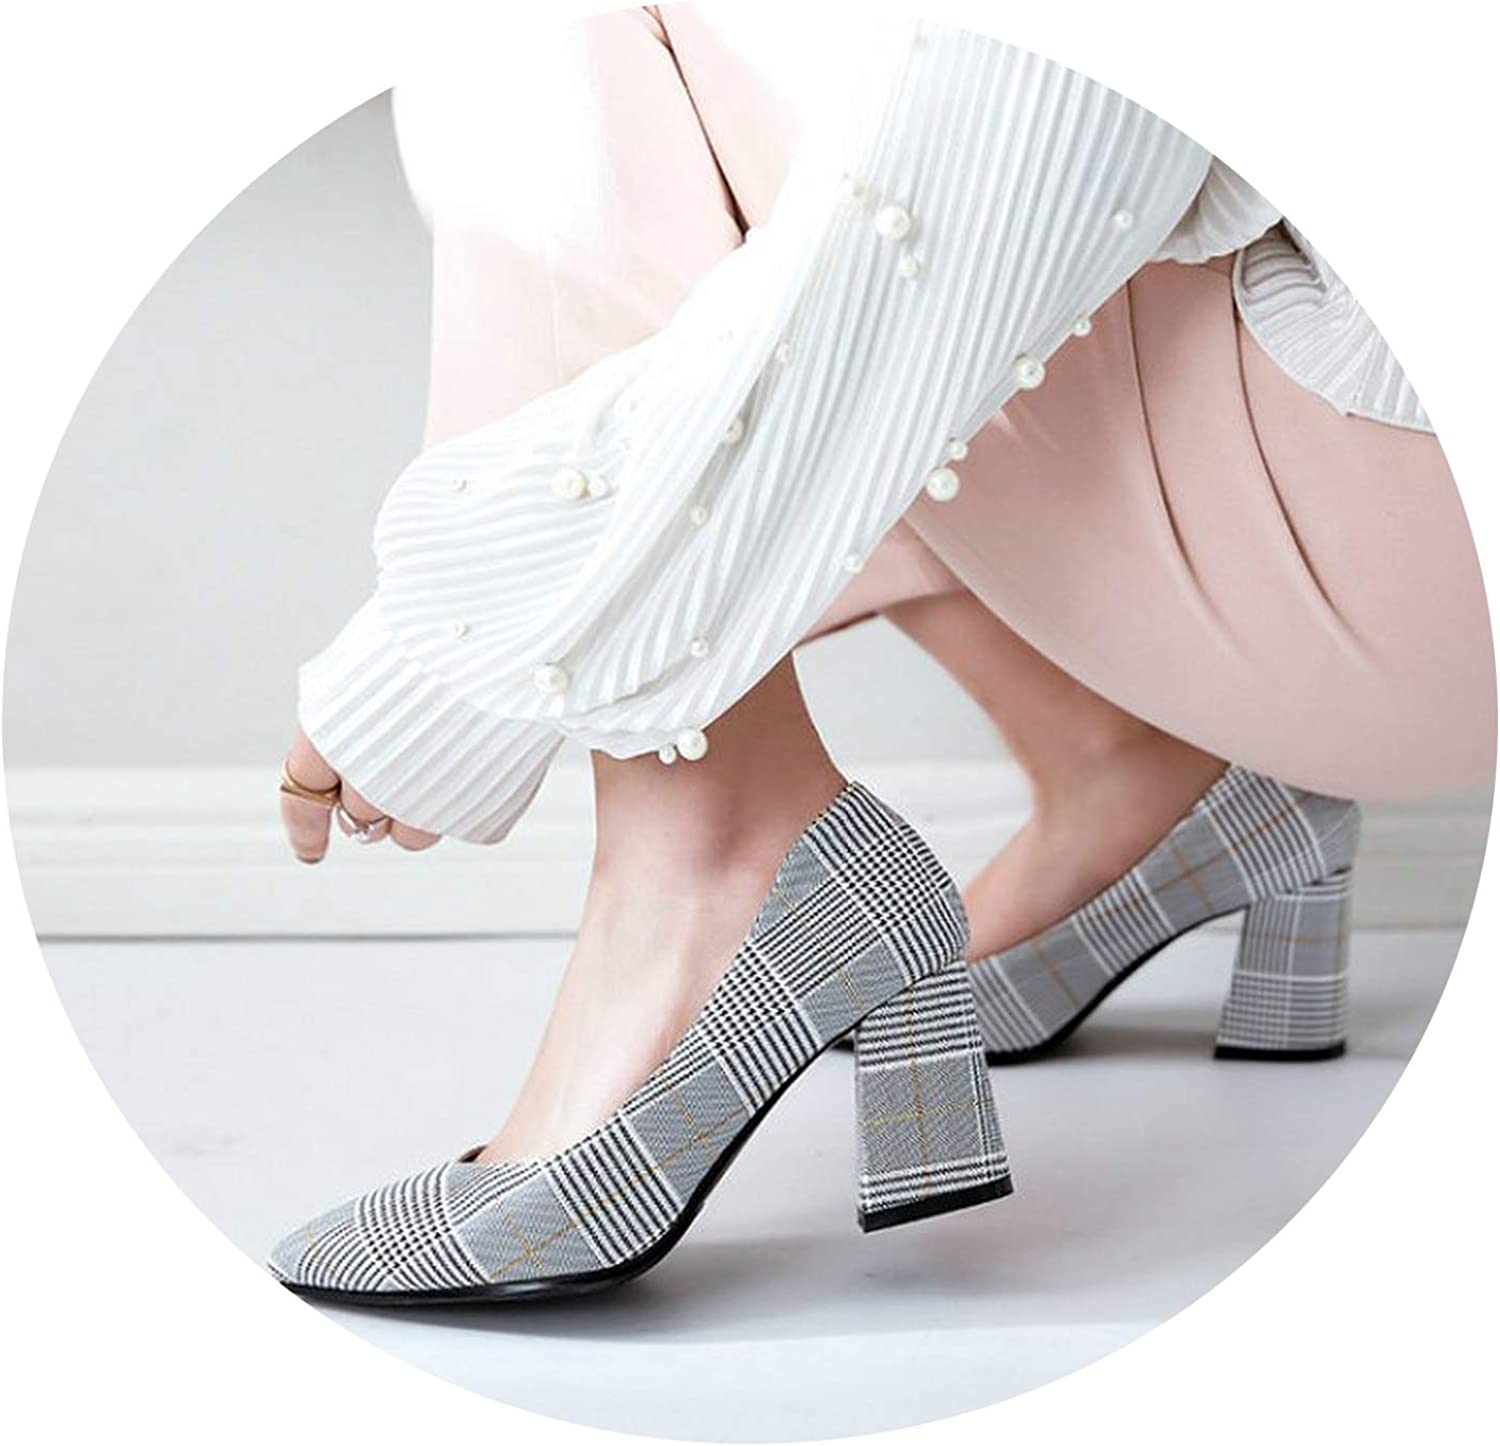 Sianie Tianie Checked Plaid Pointed Toe Office Career Stiletto Dress shoes high Heels shoes 45 46